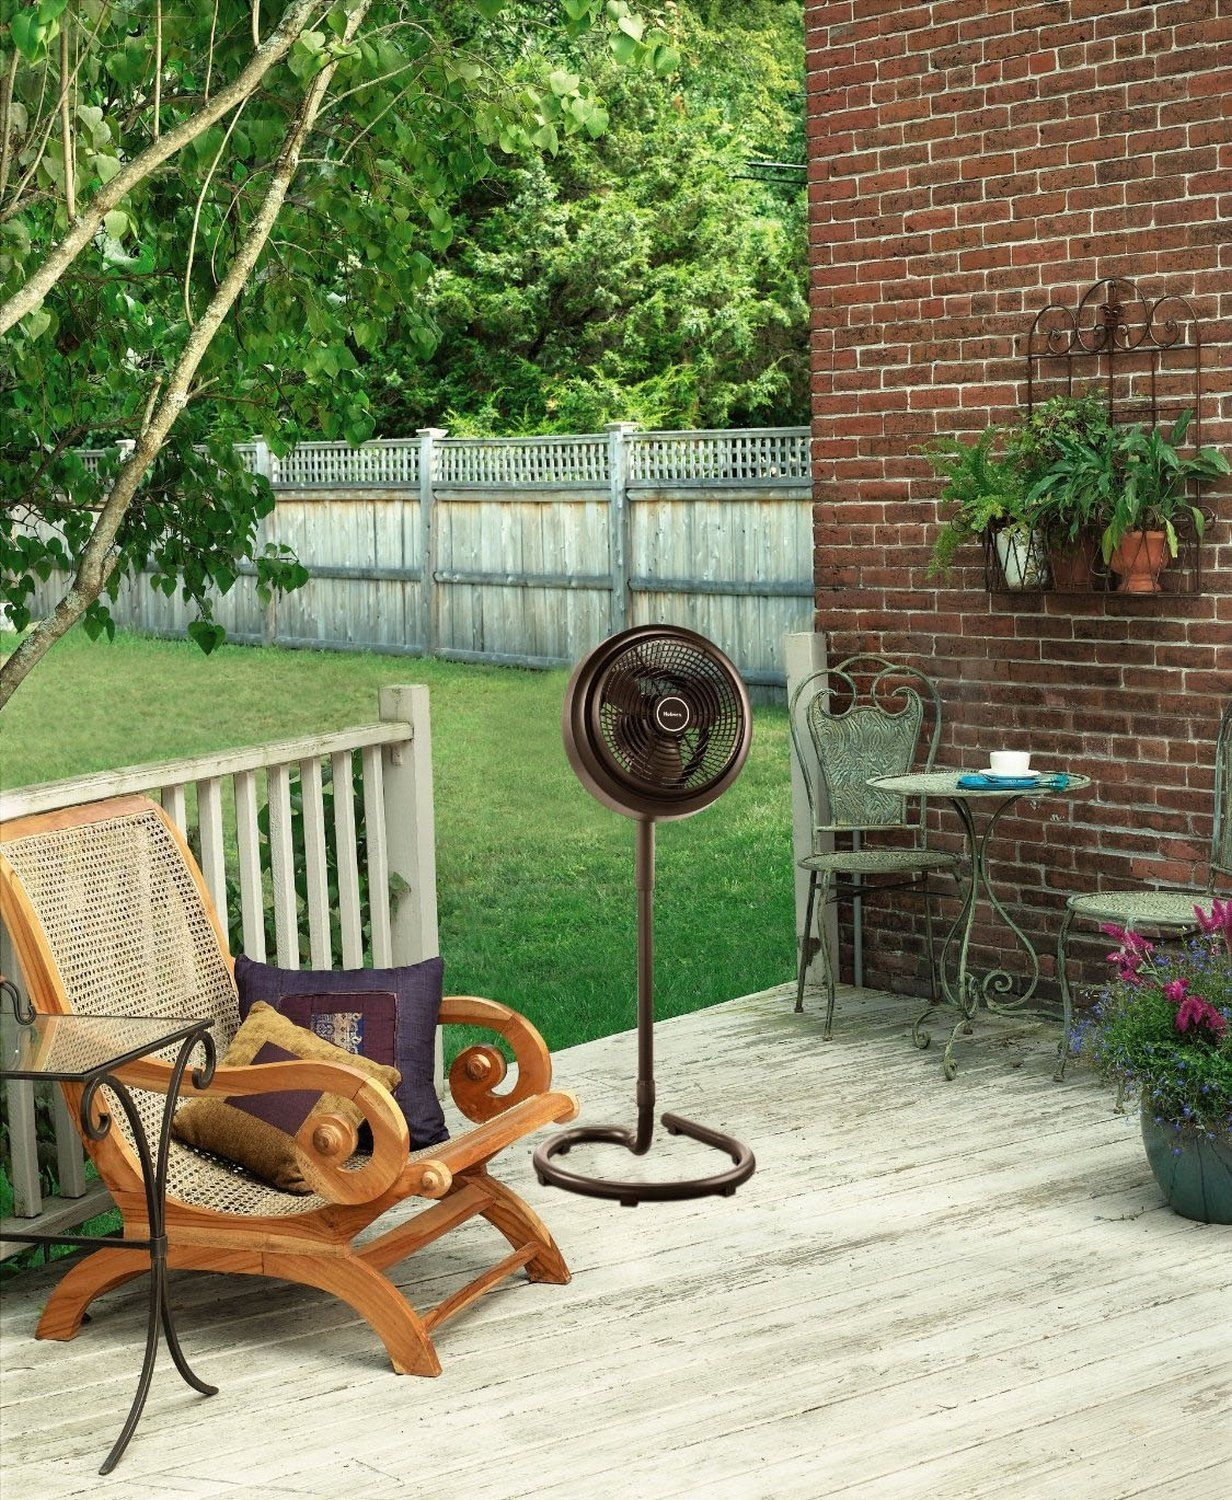 50cm Pedestal Fan For Back Yard